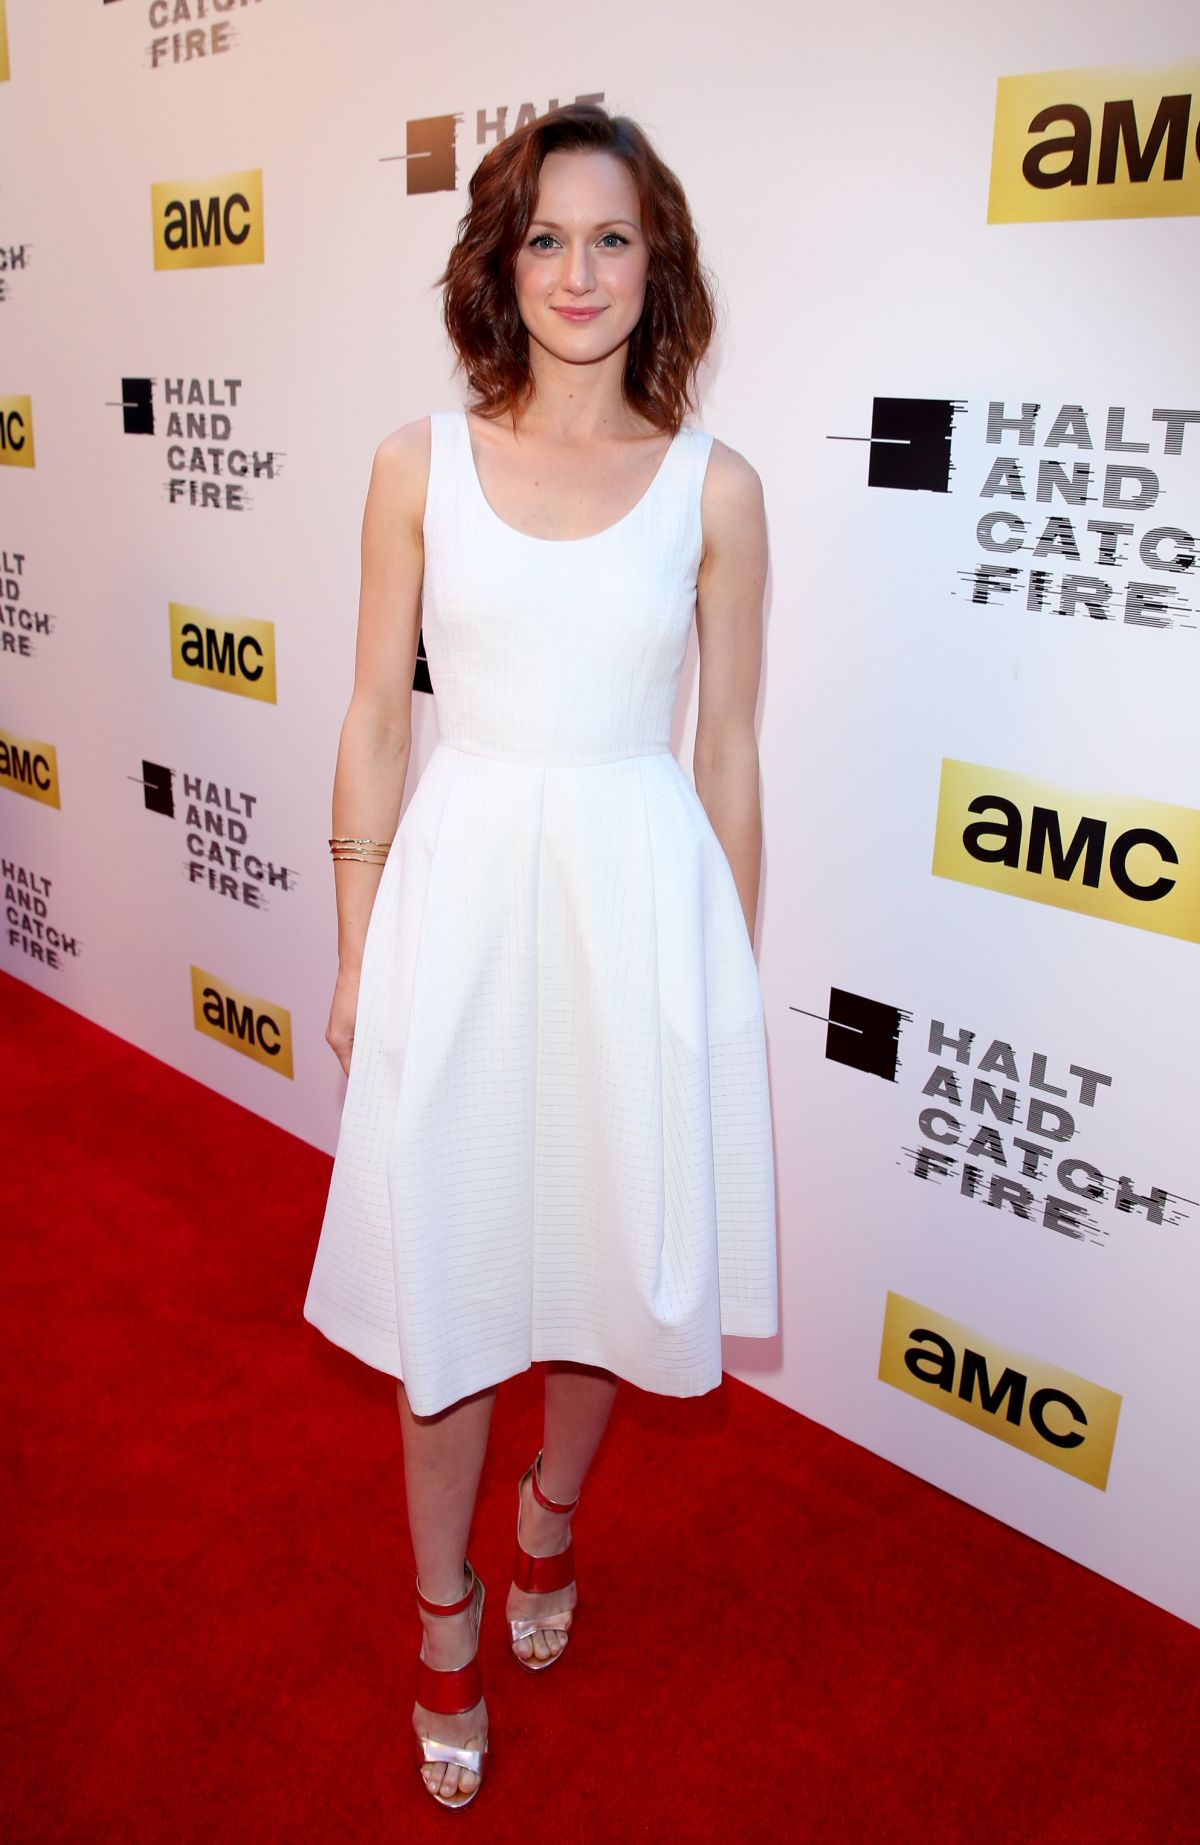 KERRY BISHE at Halt and Catch Fire Premiere in Hollywood